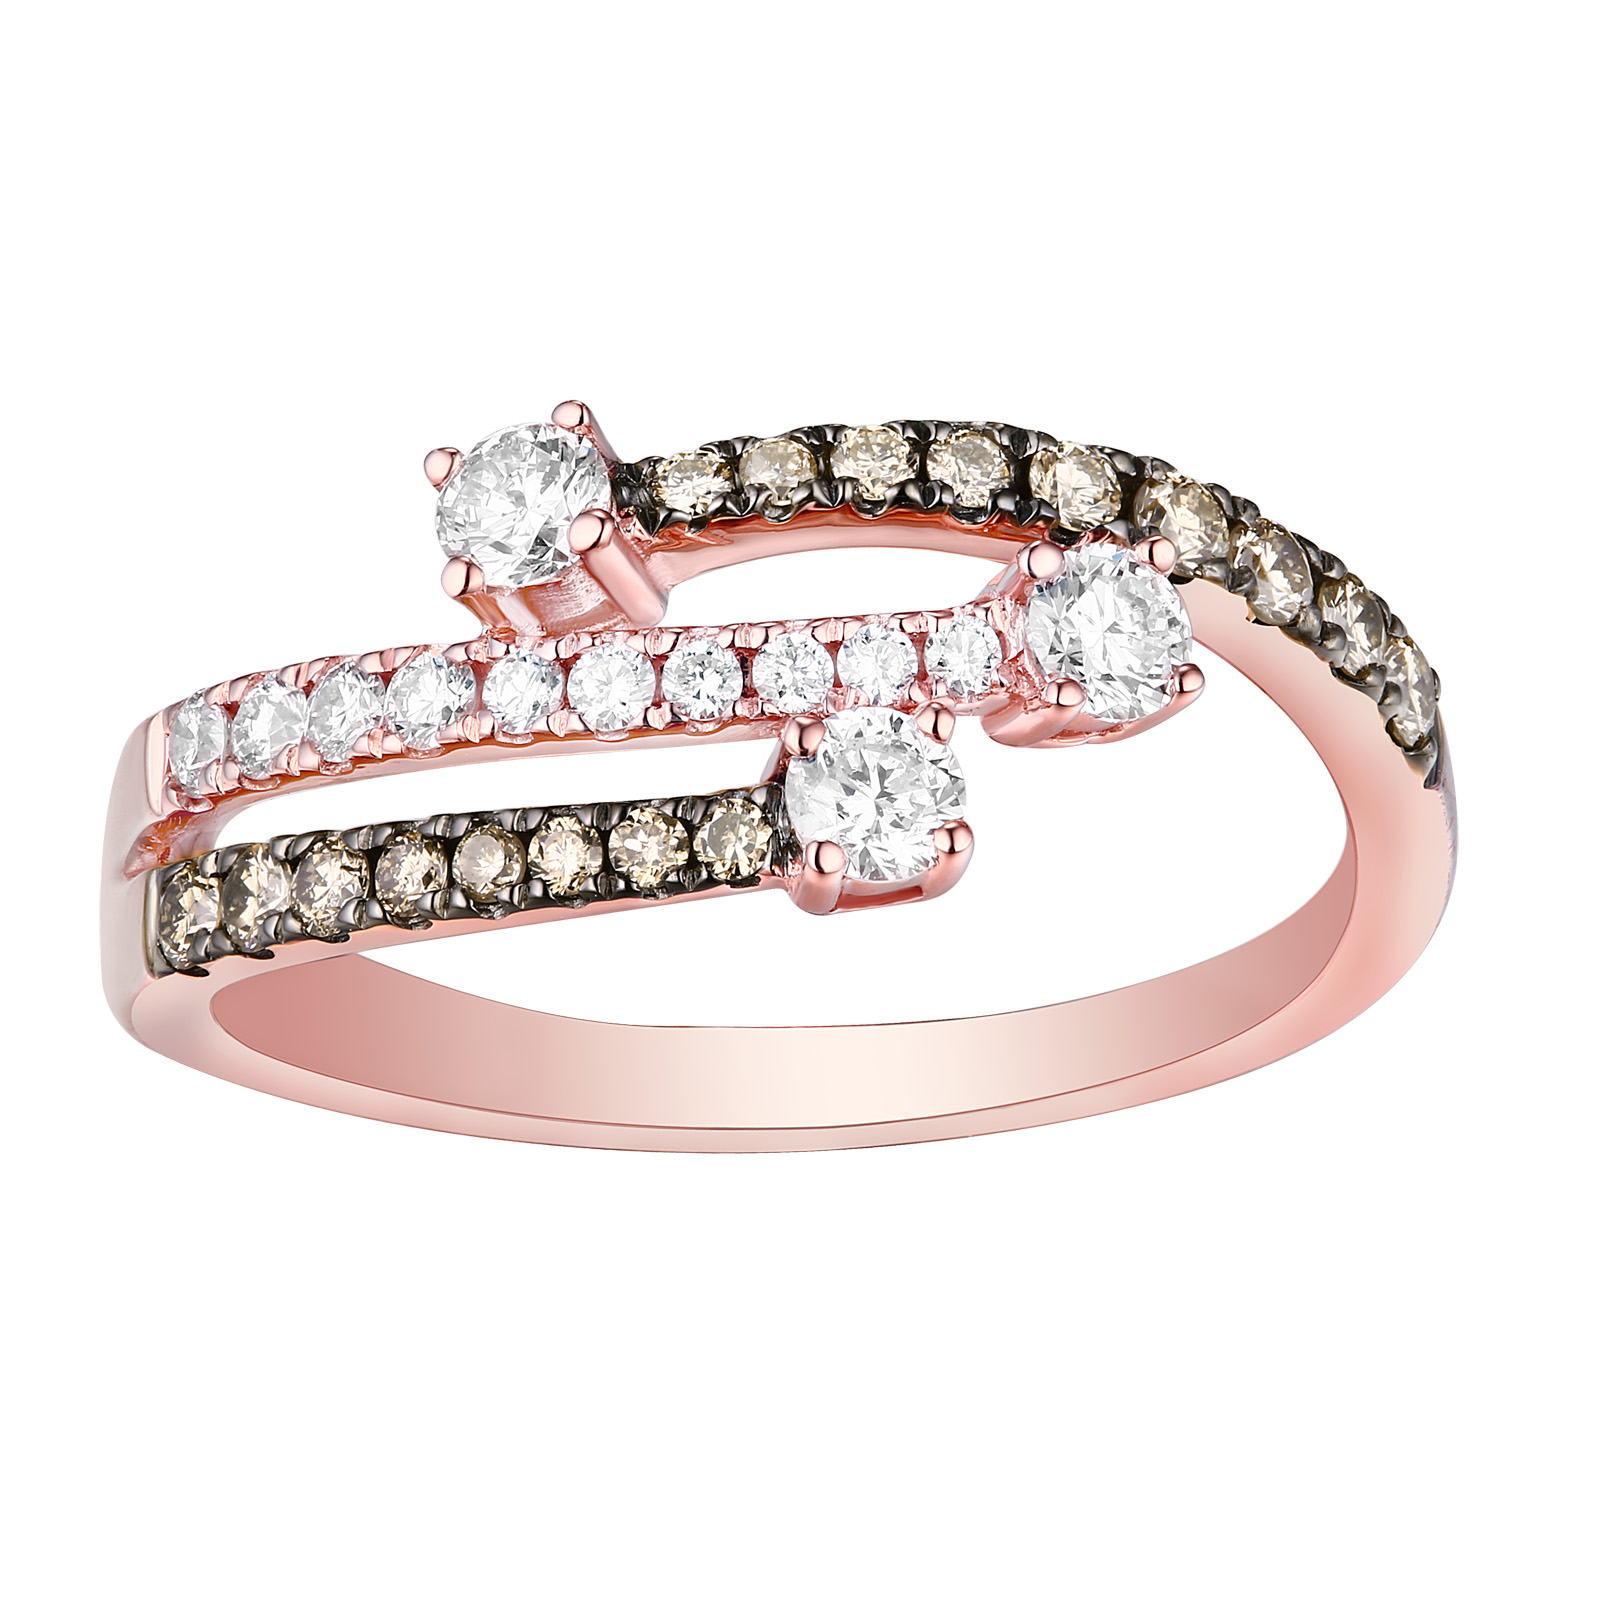 R25899WBR- 14K Rose Gold Diamond Ring, 0.60 TCW